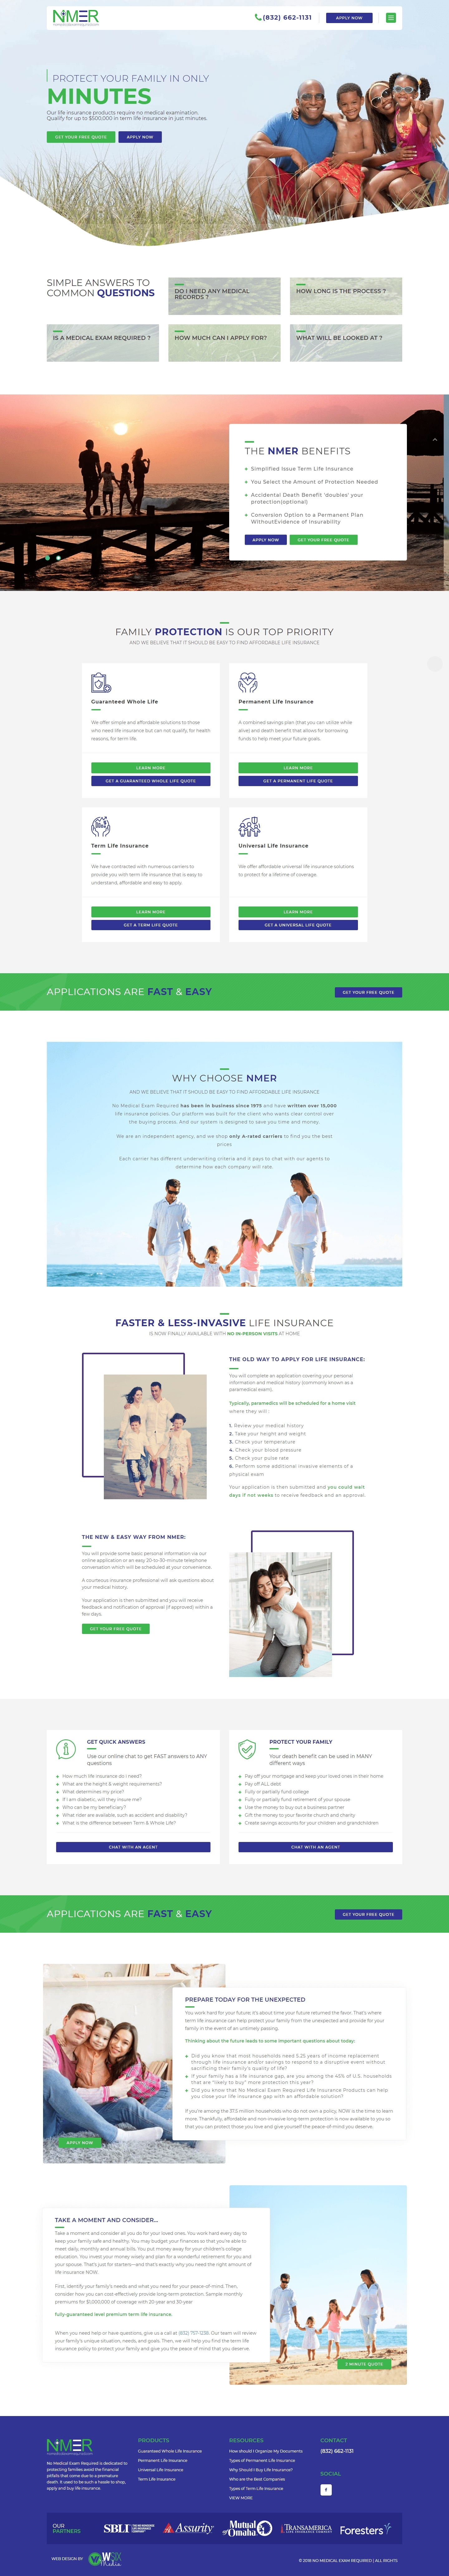 NMER The Woodlands Web Design Page